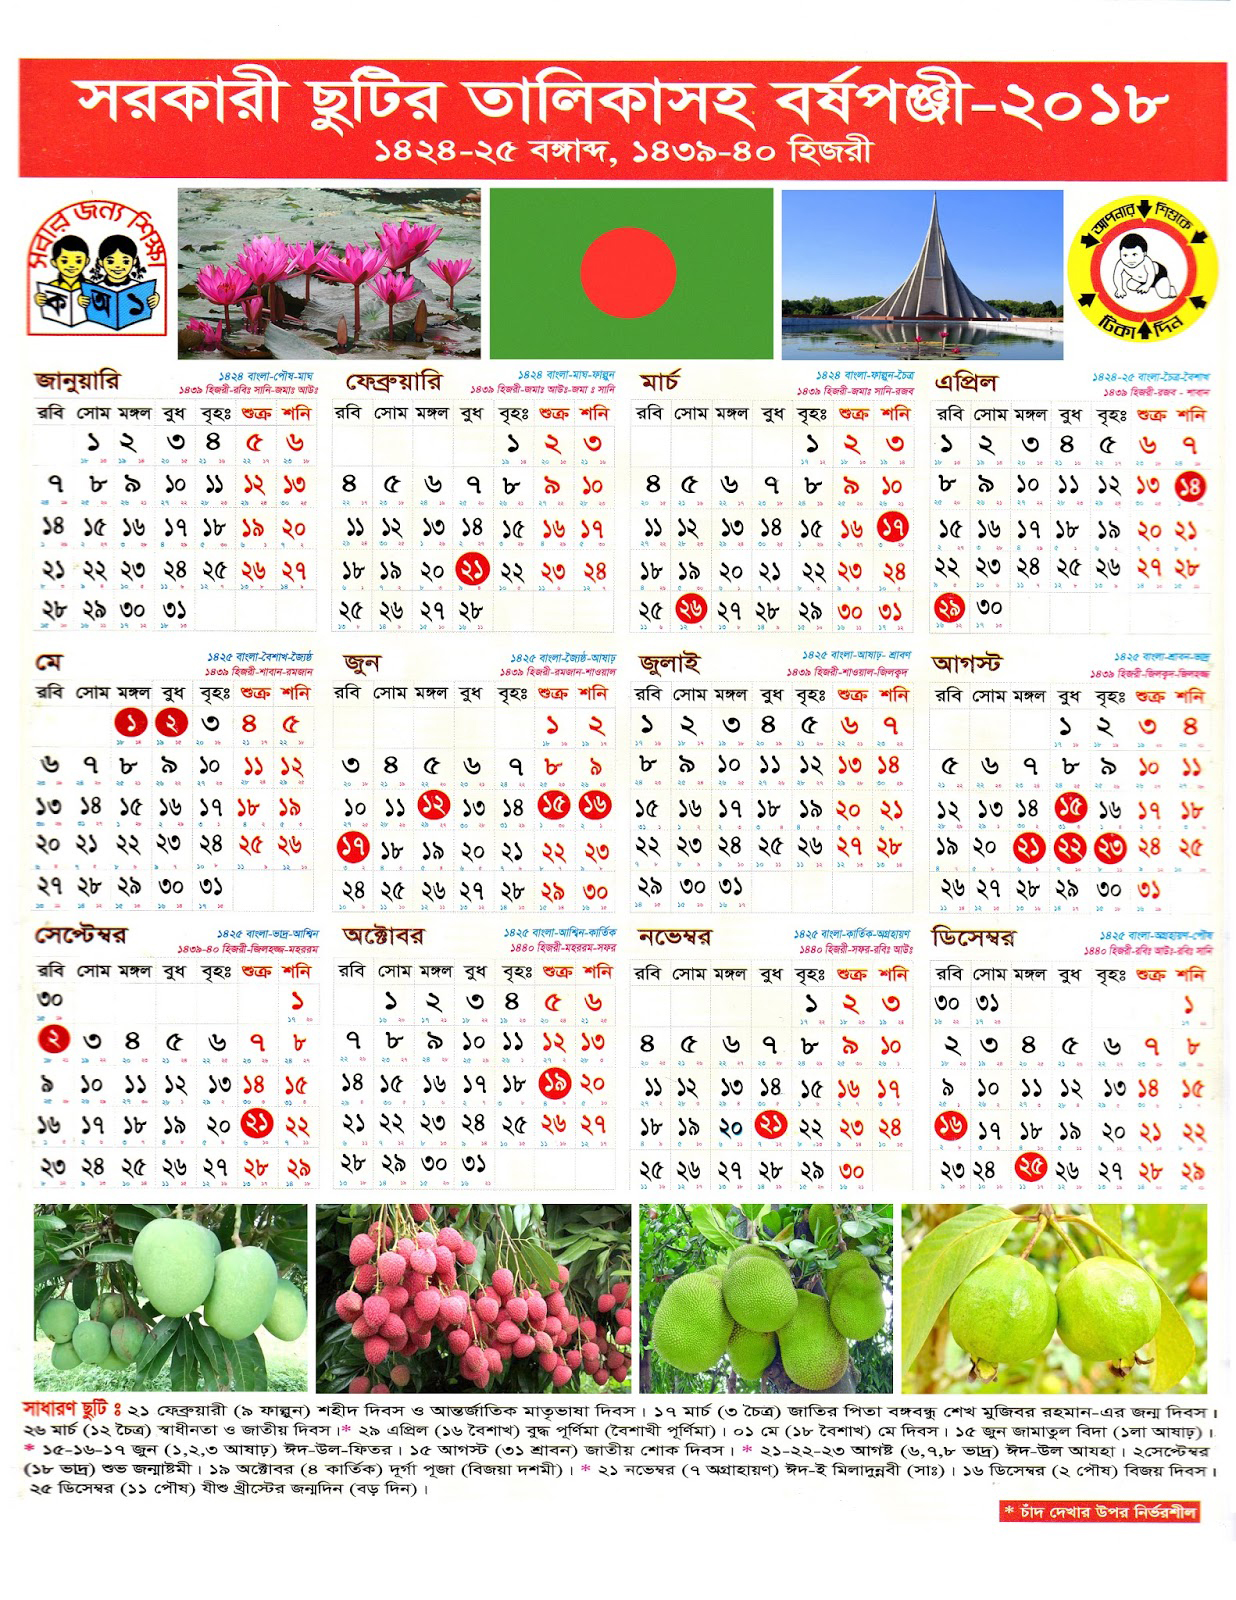 Bangladesh Government holidays list 2018 | Bangladesh Education